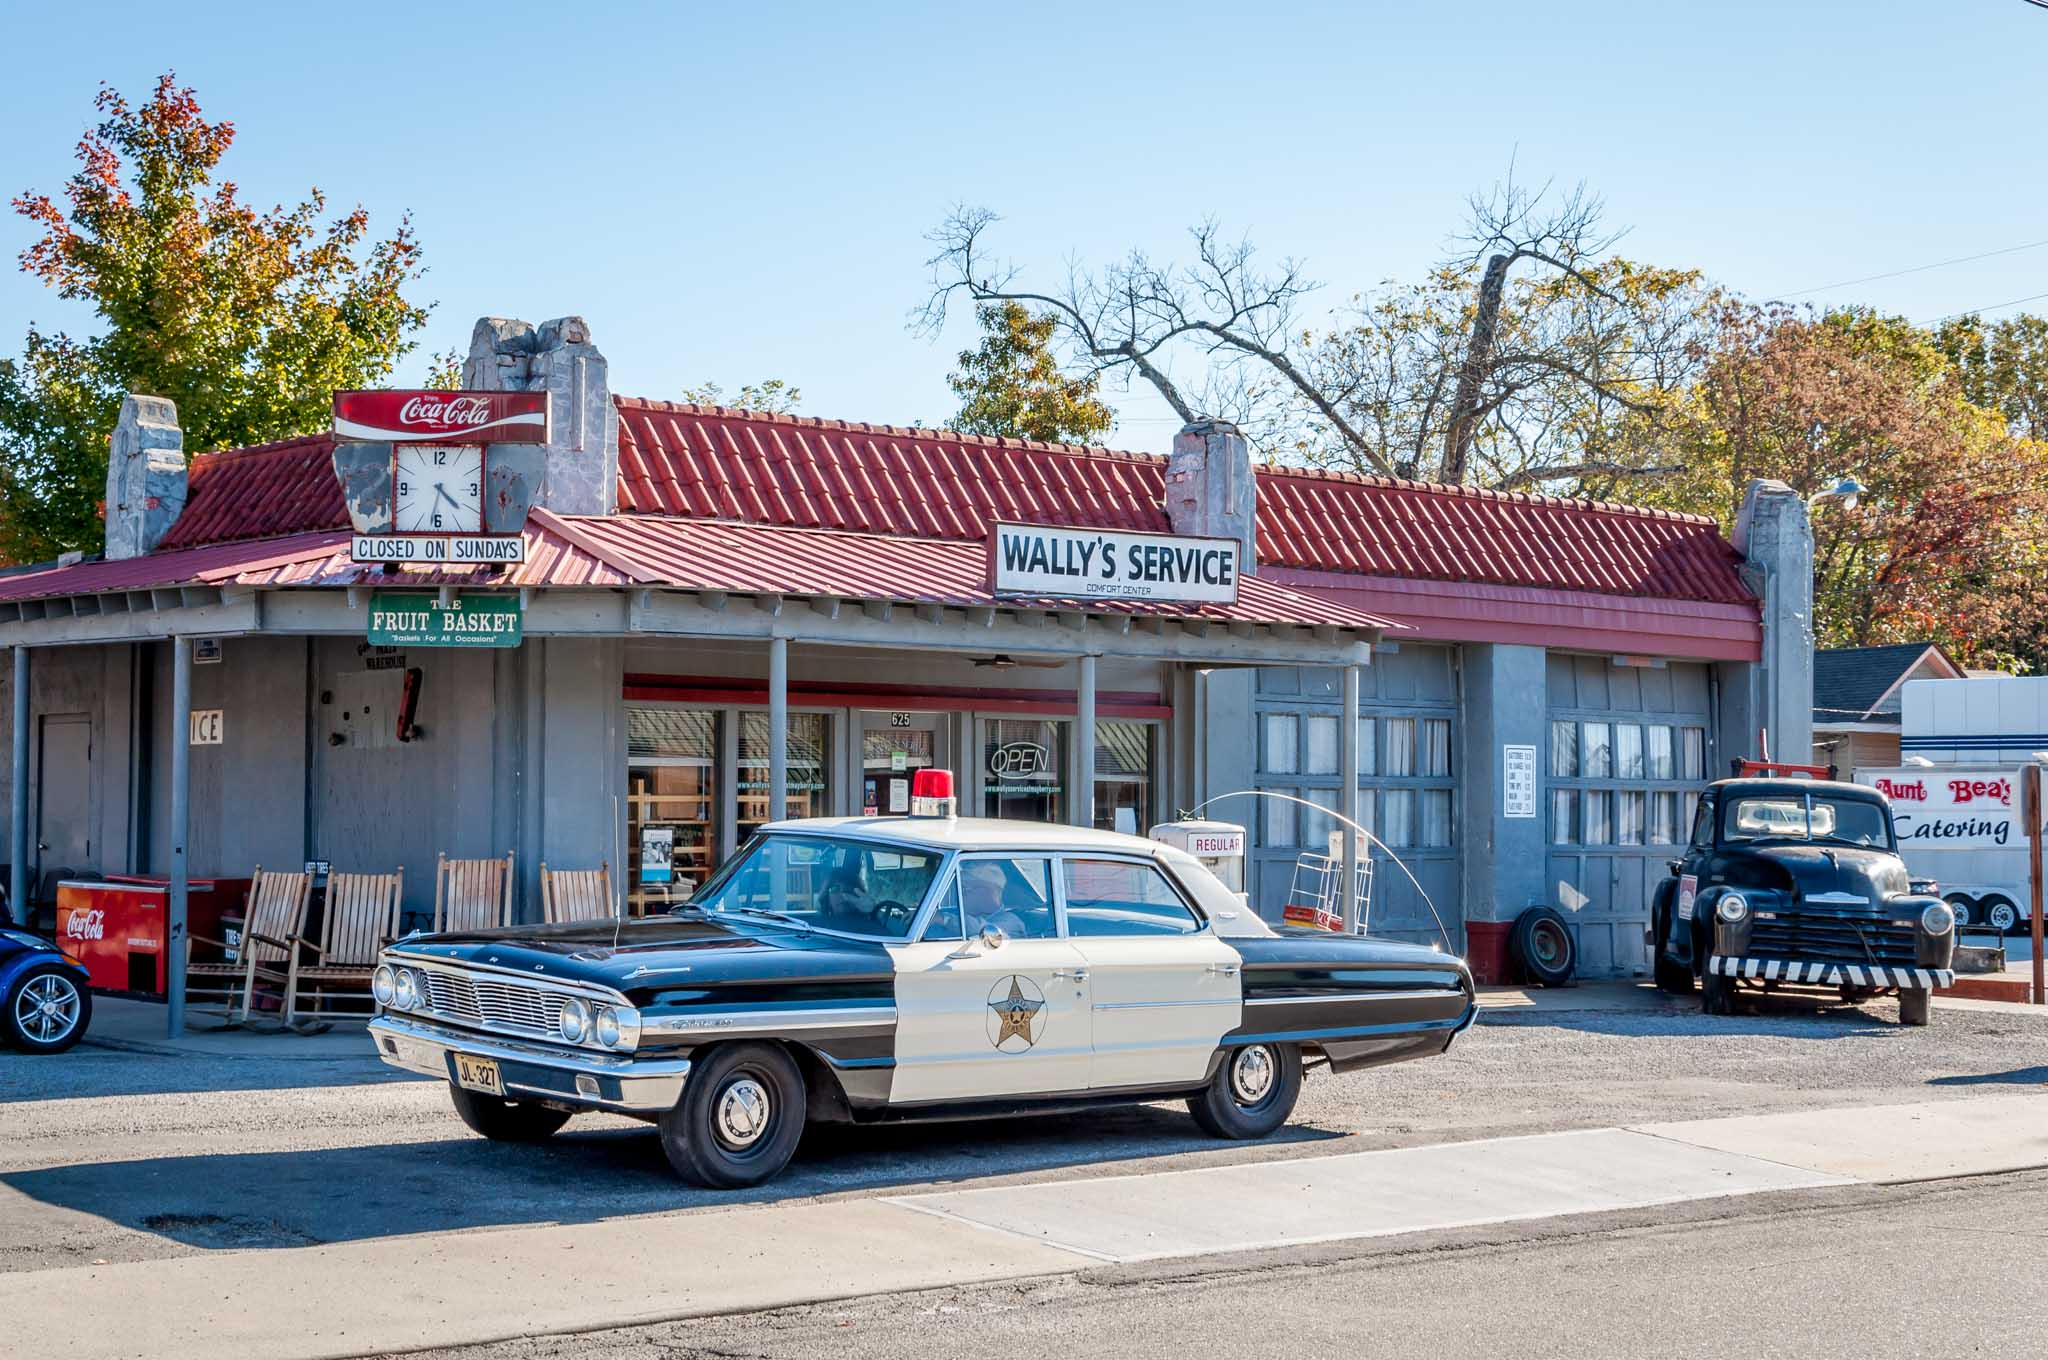 Old fashioned police car in front of Wally's Service station